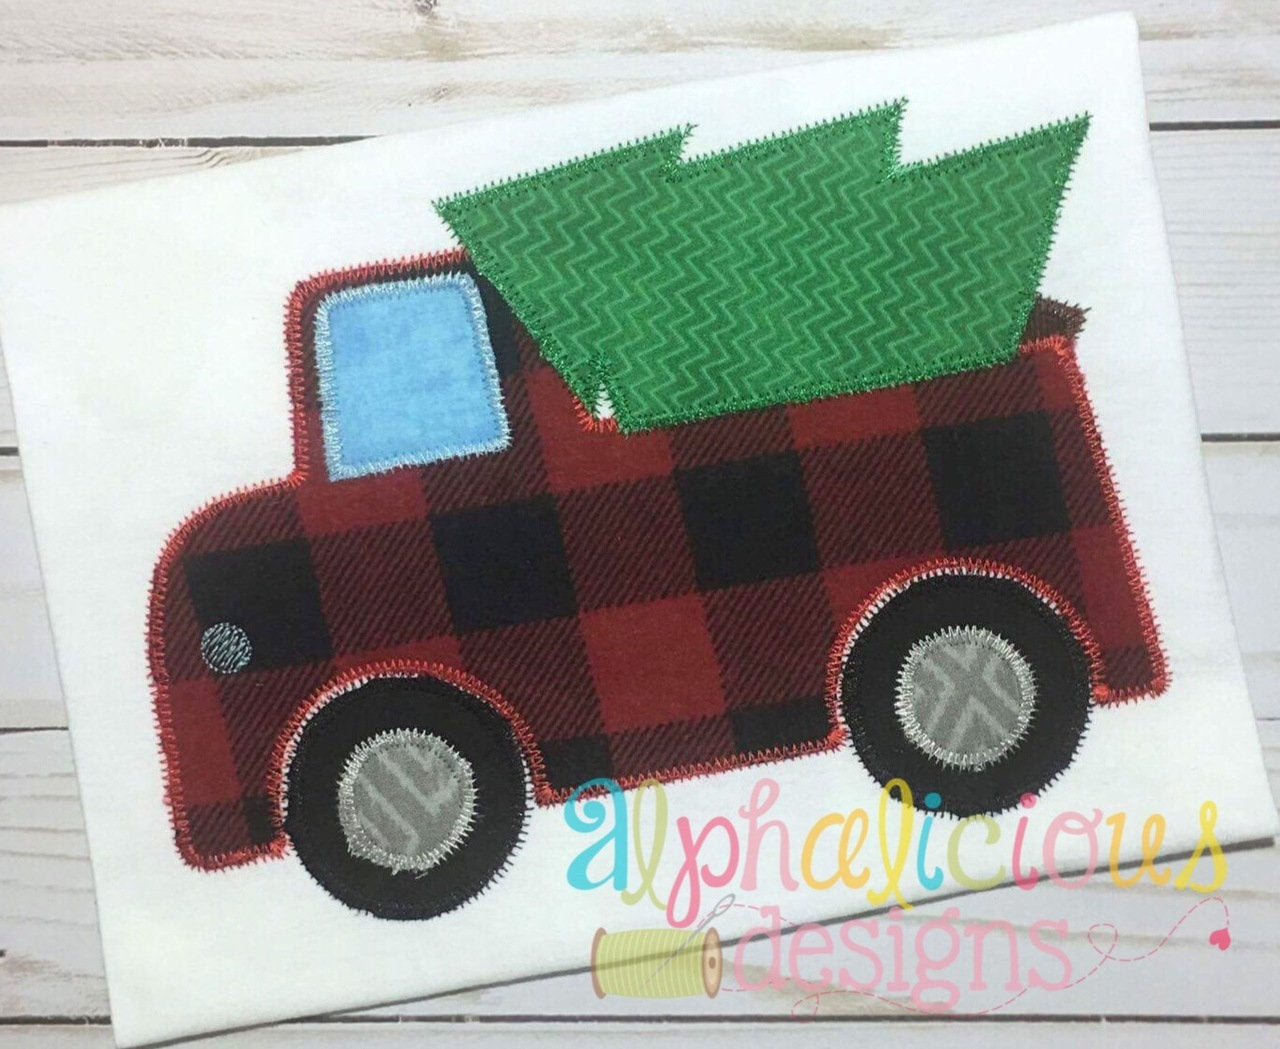 Oh christmas tree truck zigzag applique design u alphalicious designs